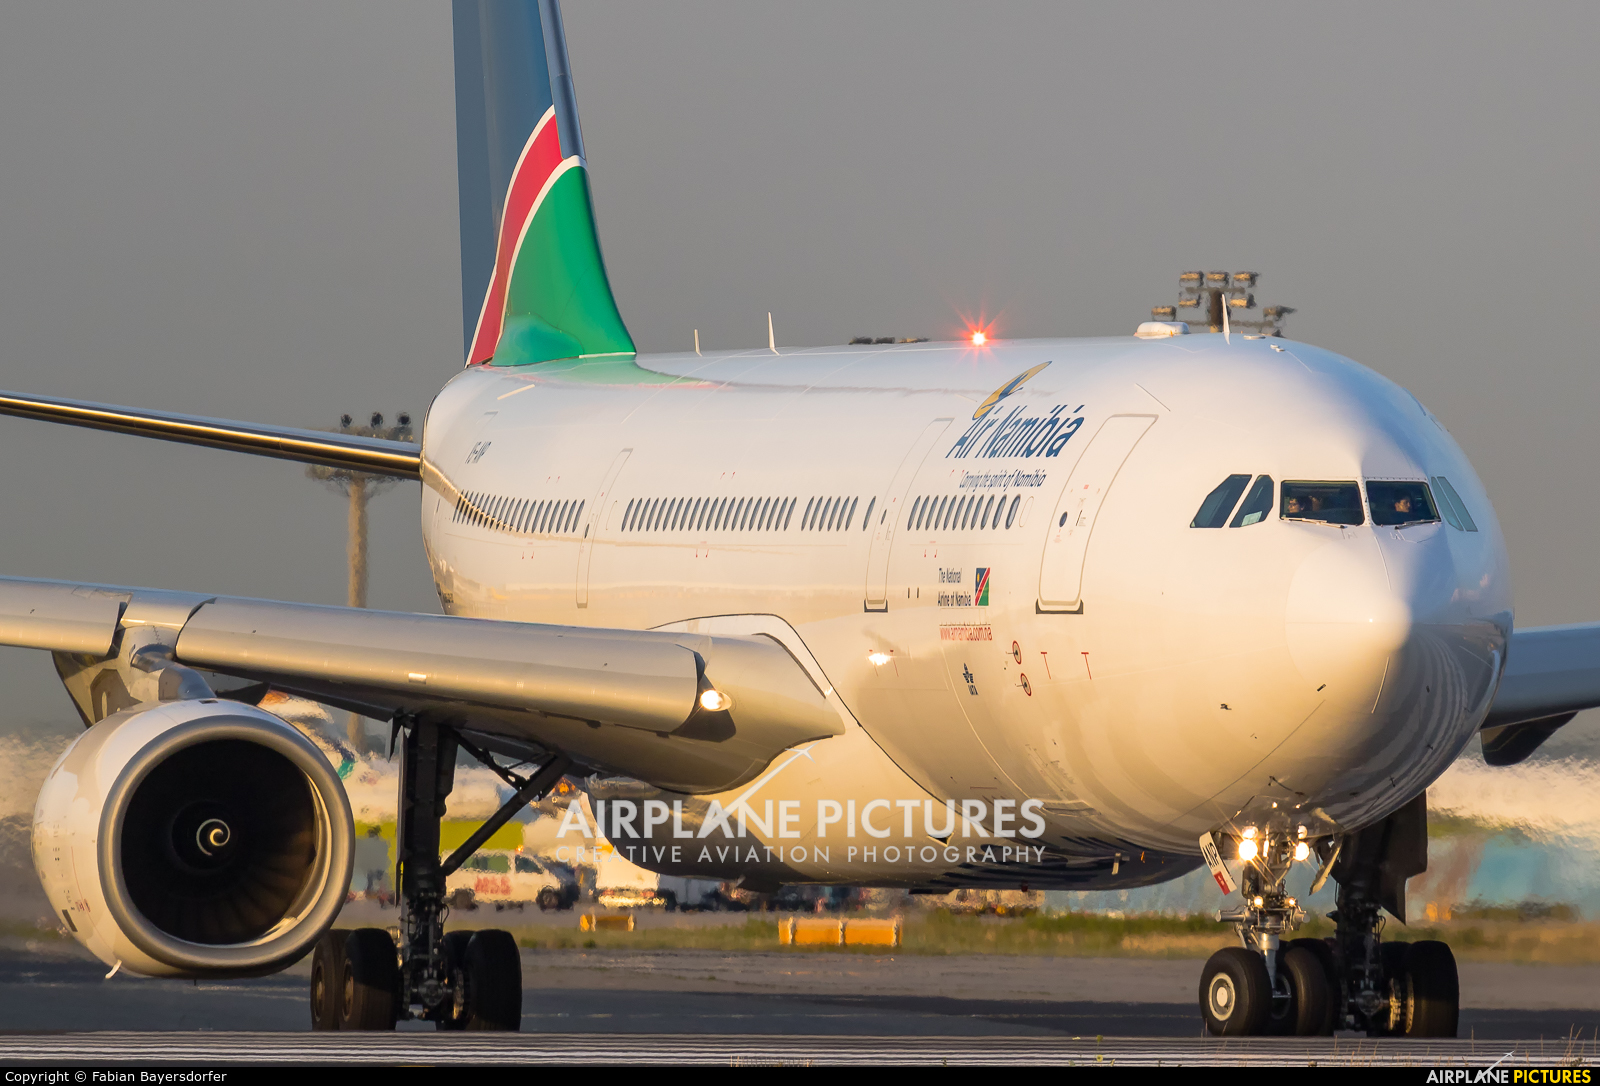 Air Namibia V5-ANP aircraft at Frankfurt